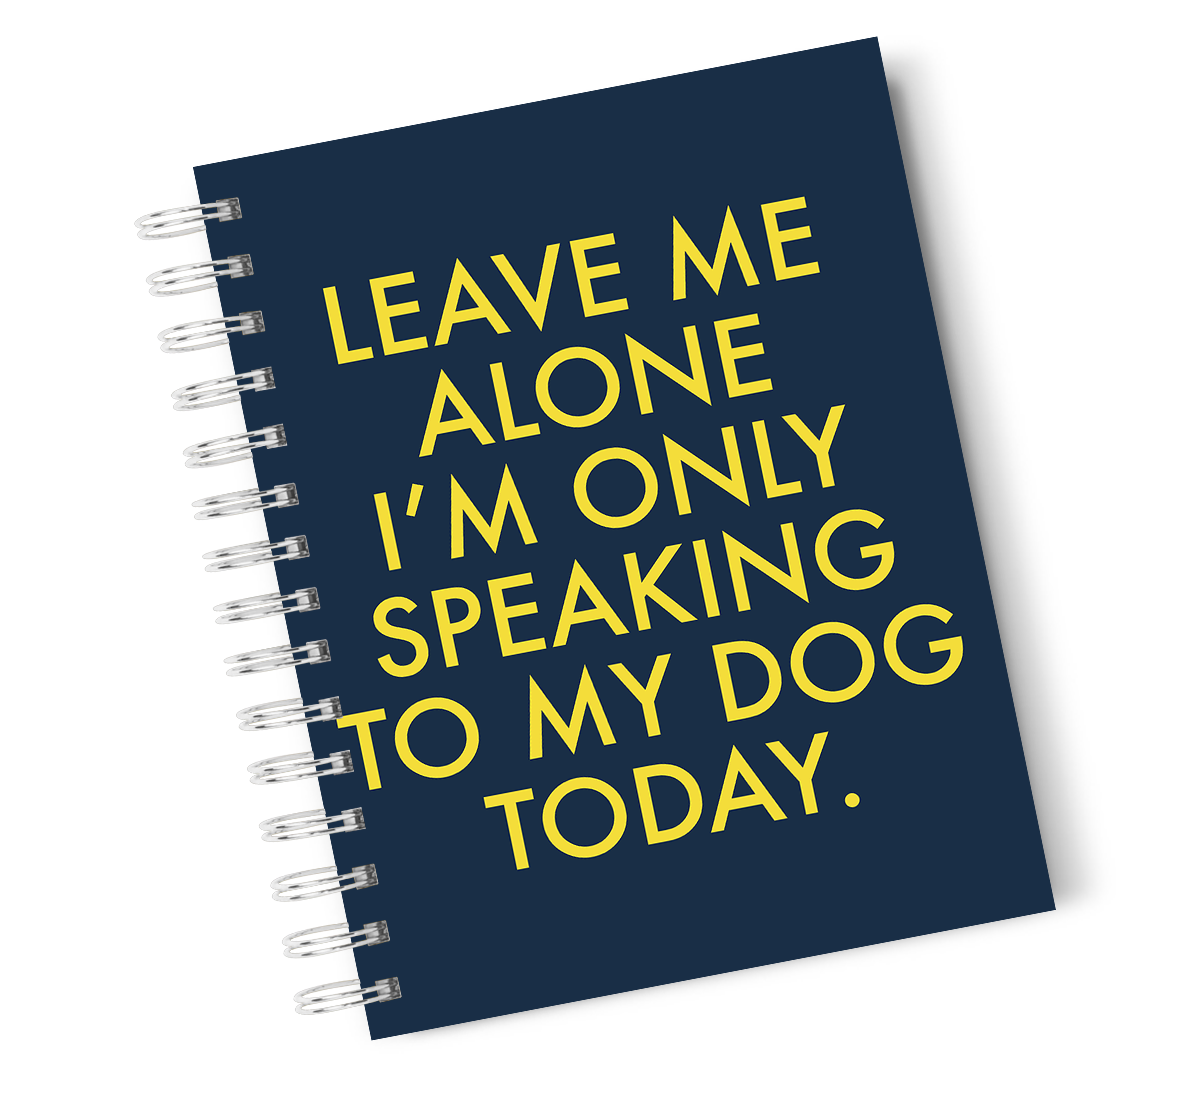 A4 Hardcover Notebook No Pun Leave Me Alone Dog Spiral Notebook with High Quality Bright White Paper